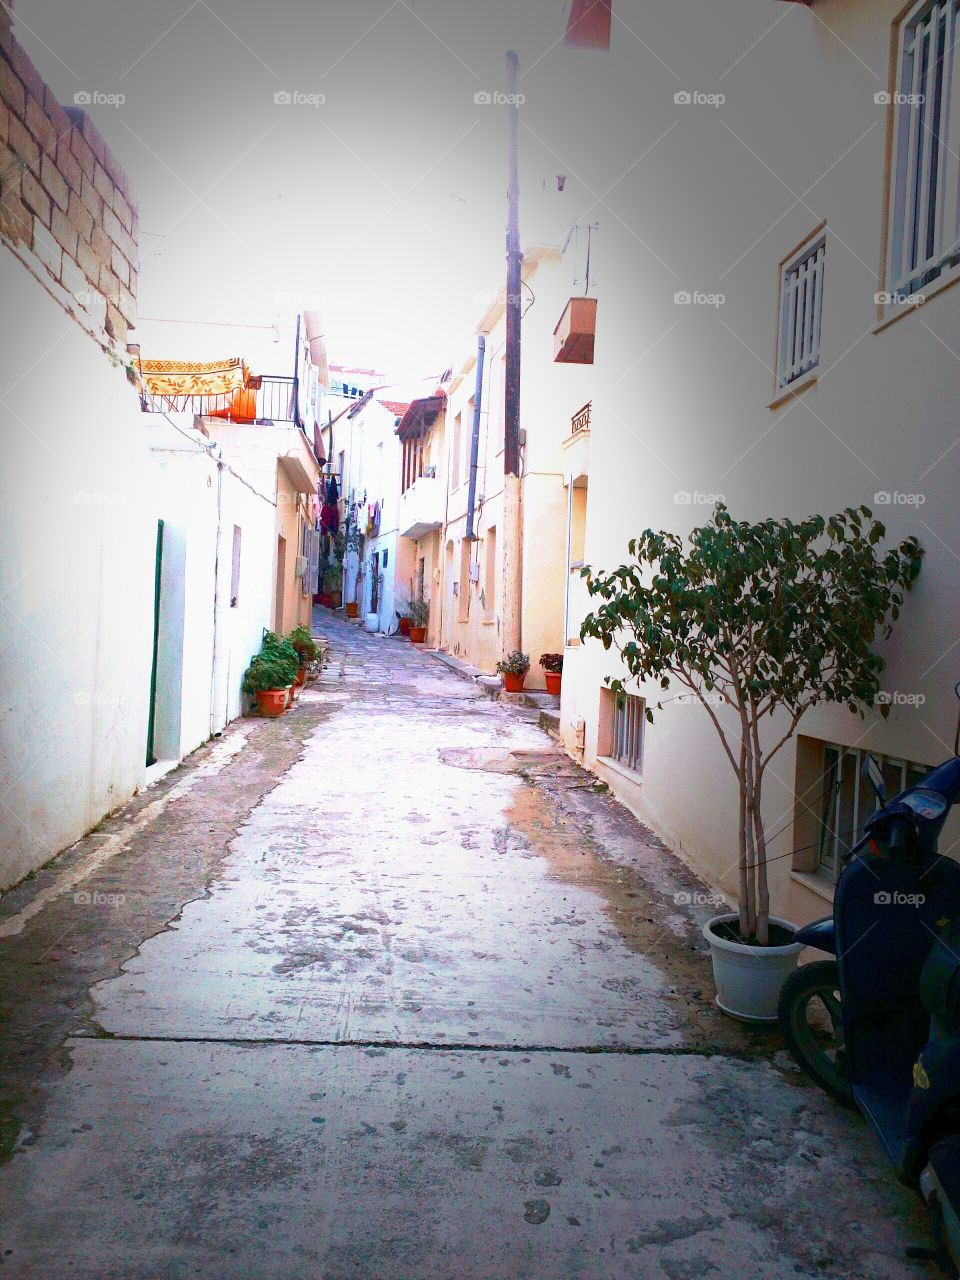 No Person, Architecture, Street, Alley, House